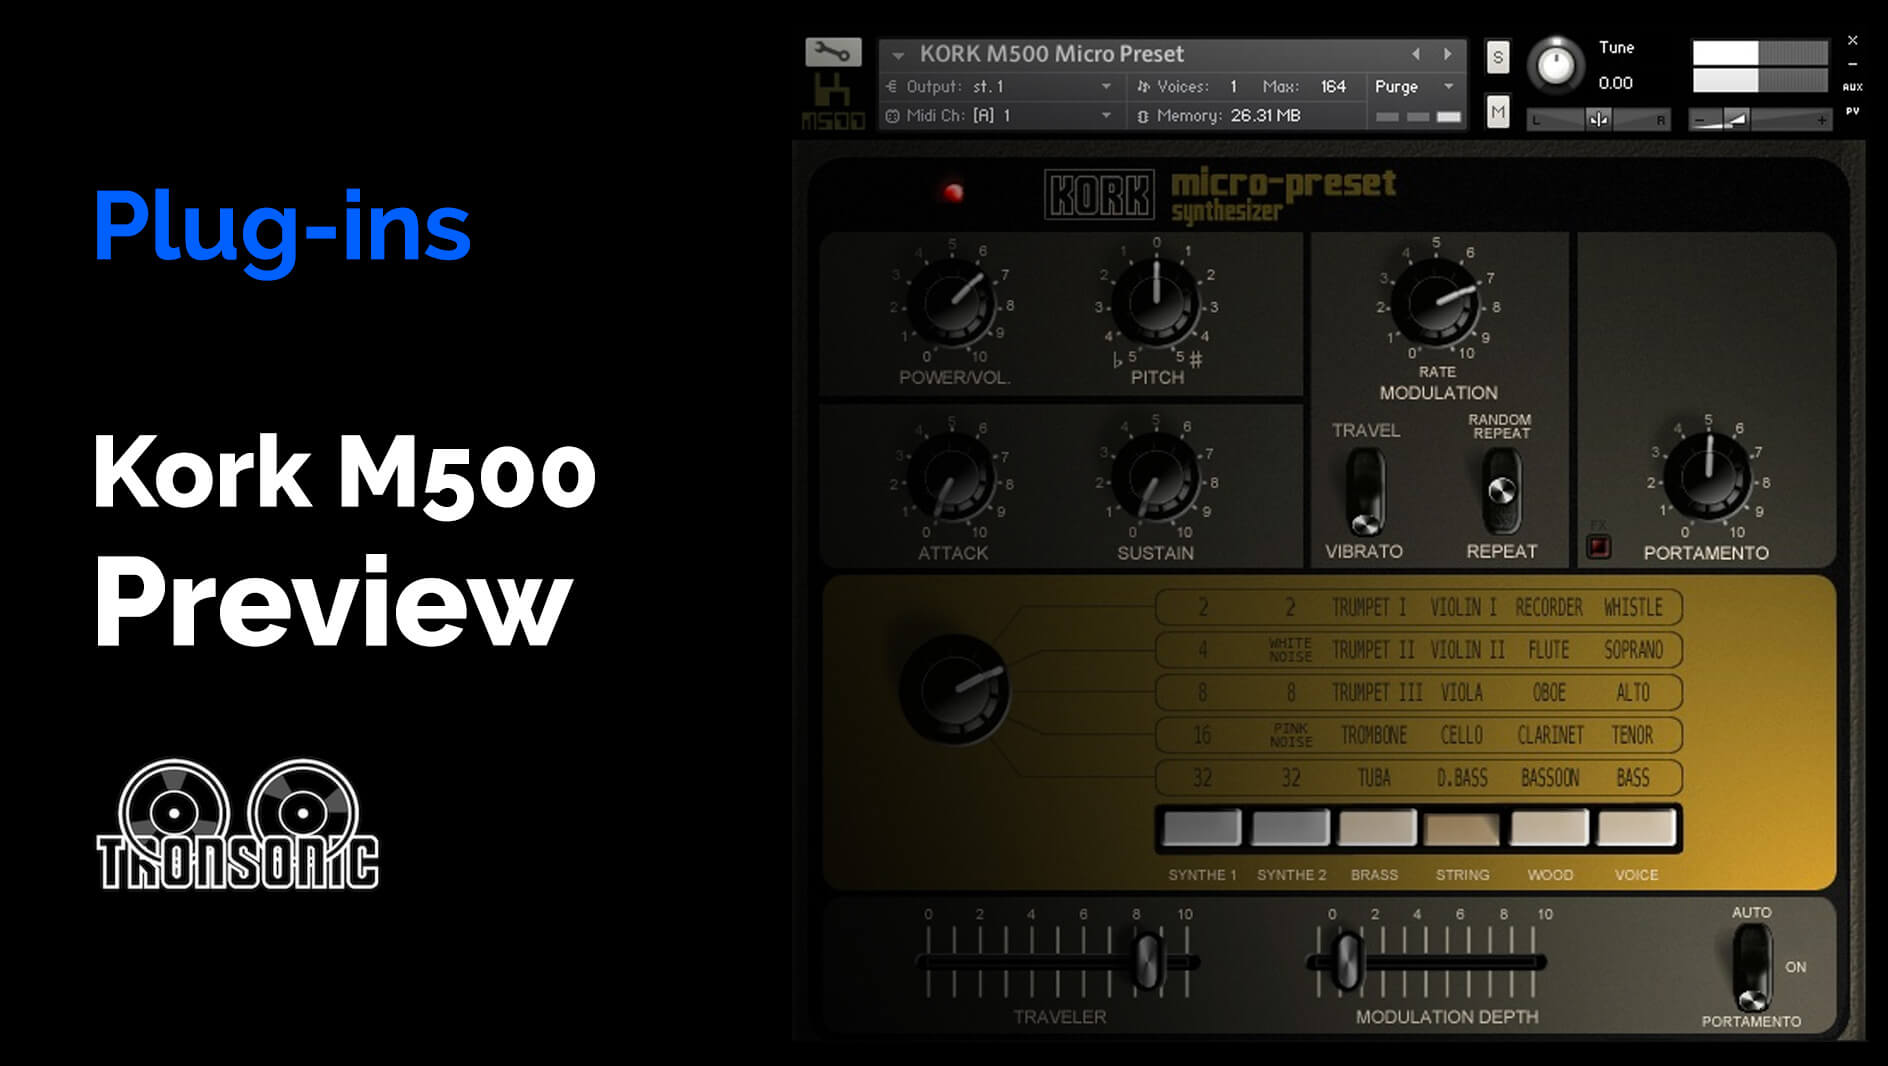 Video related to Kork M500 Micro Preset